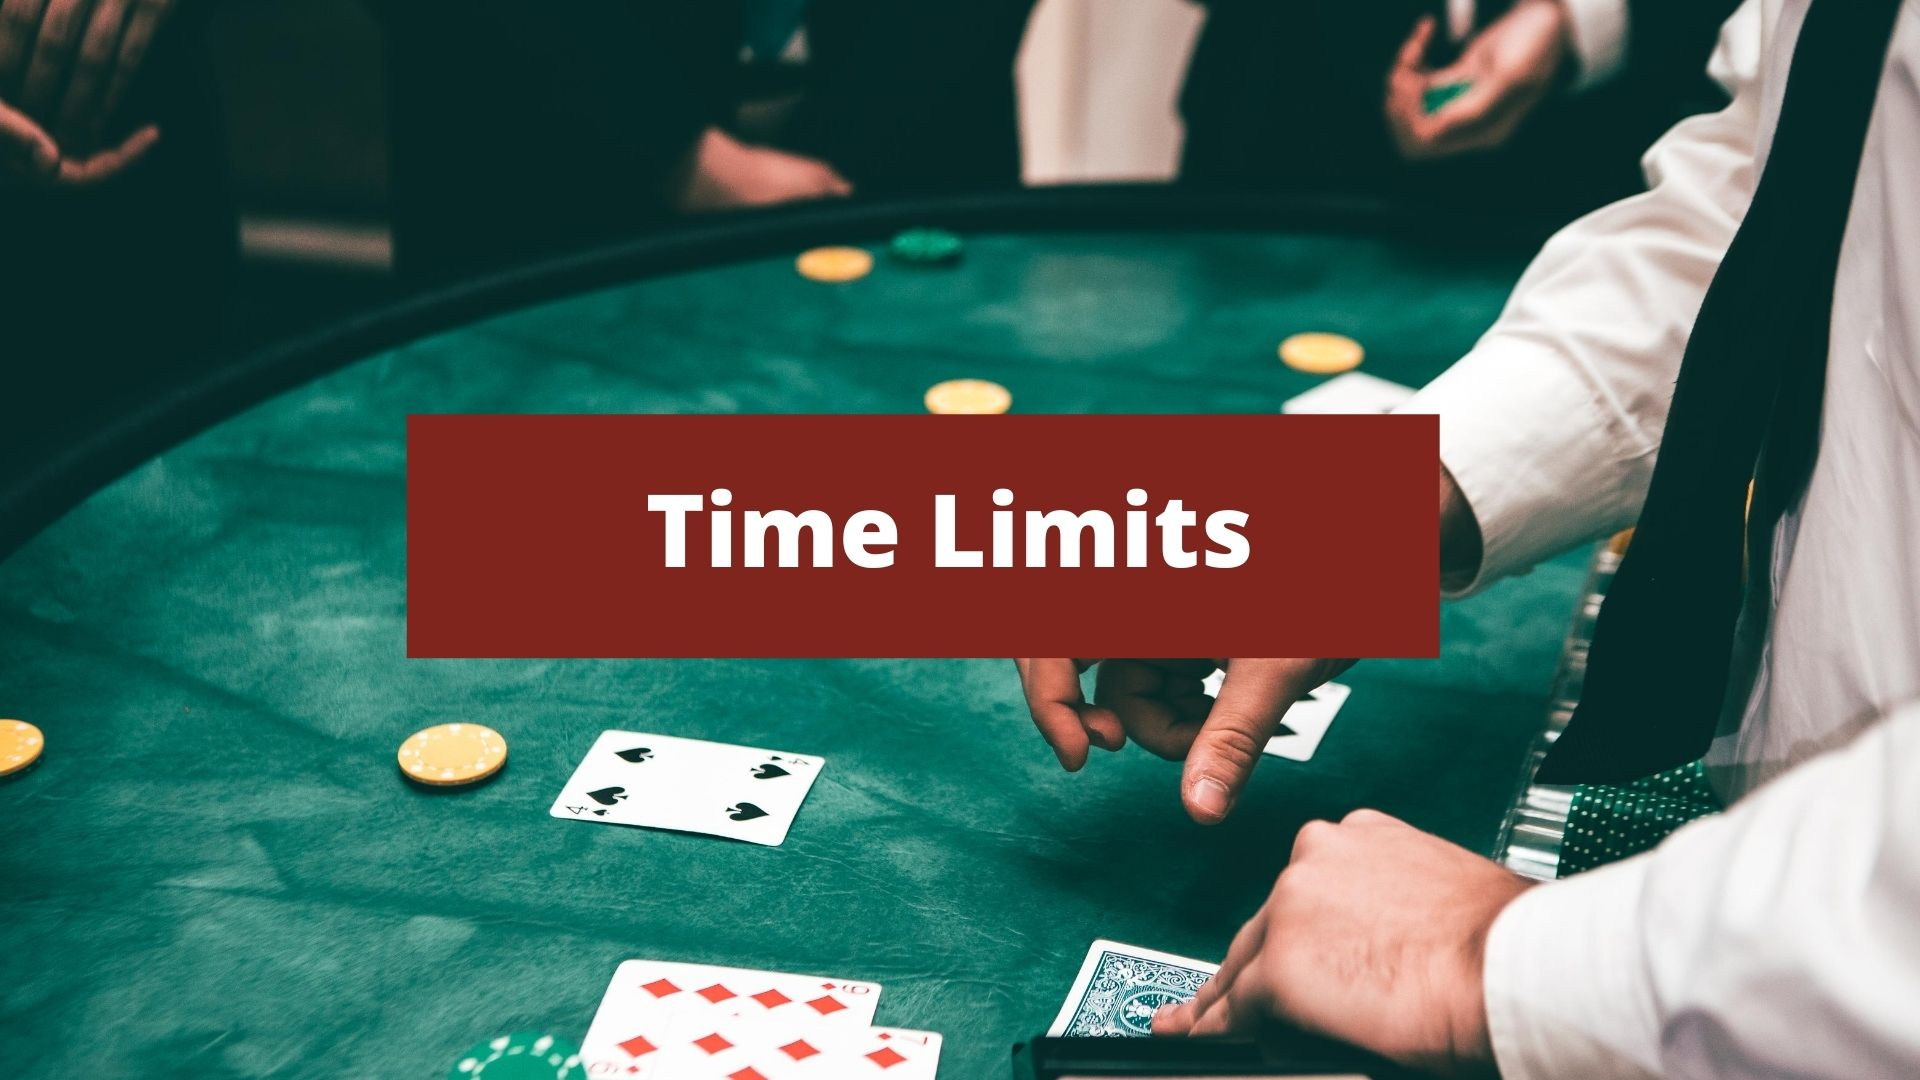 Gamble Responsibly time limits